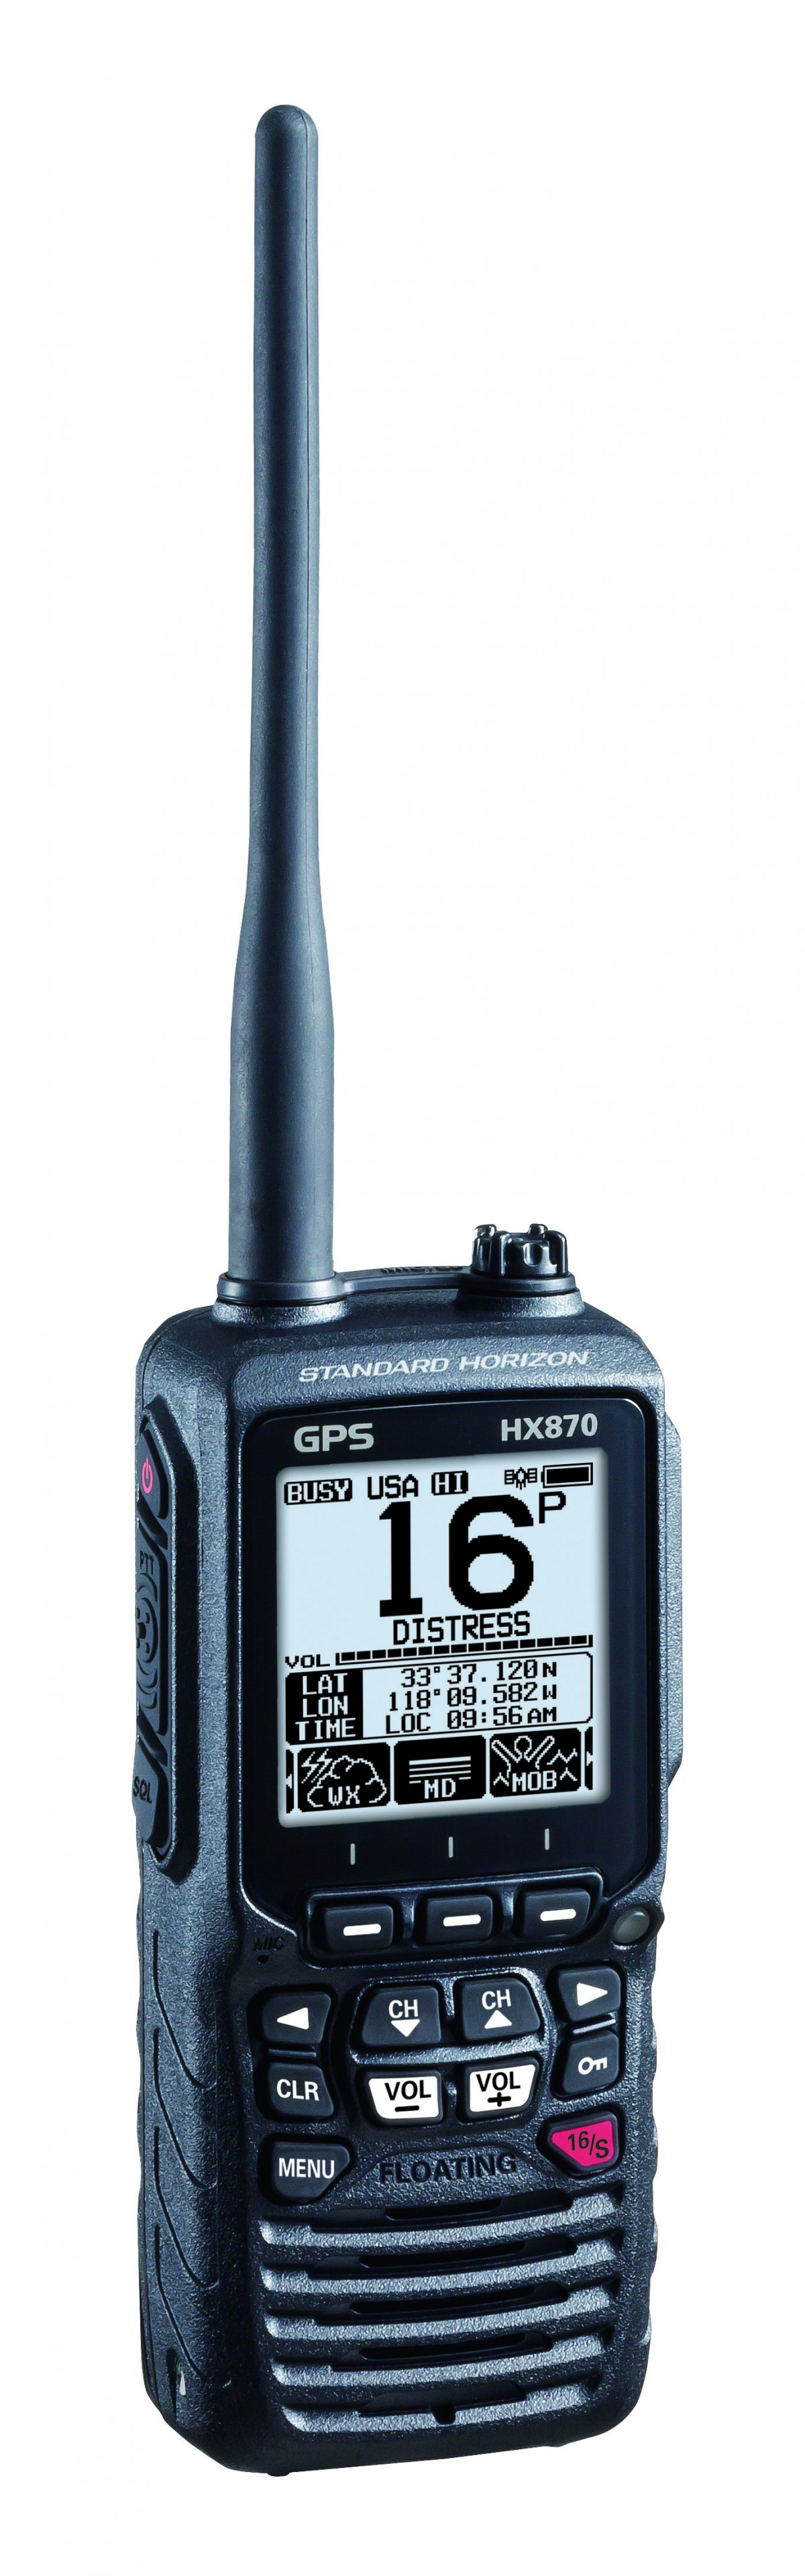 Hx870e Handheld Vhf Gps Plastimo Happy Boating To You